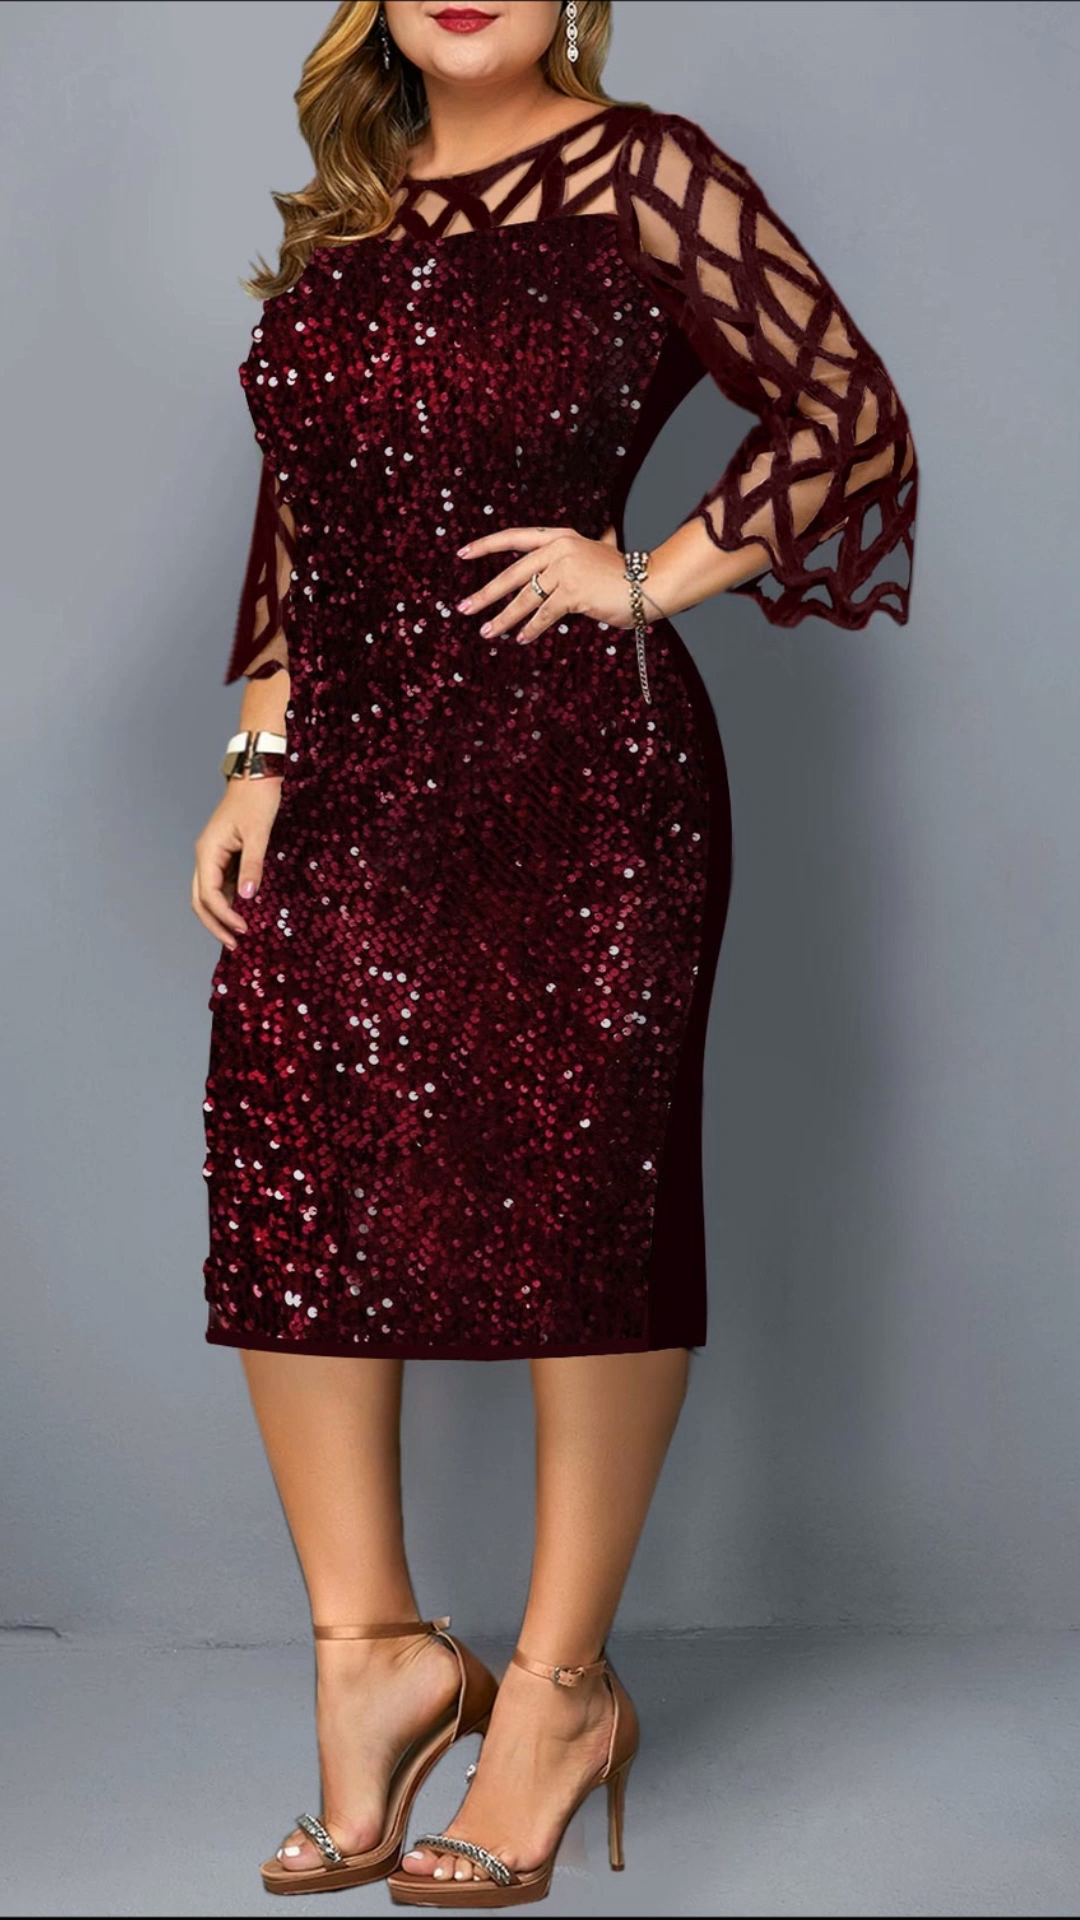 2019 Winter Plus Size Dress Outfits New Arrivals